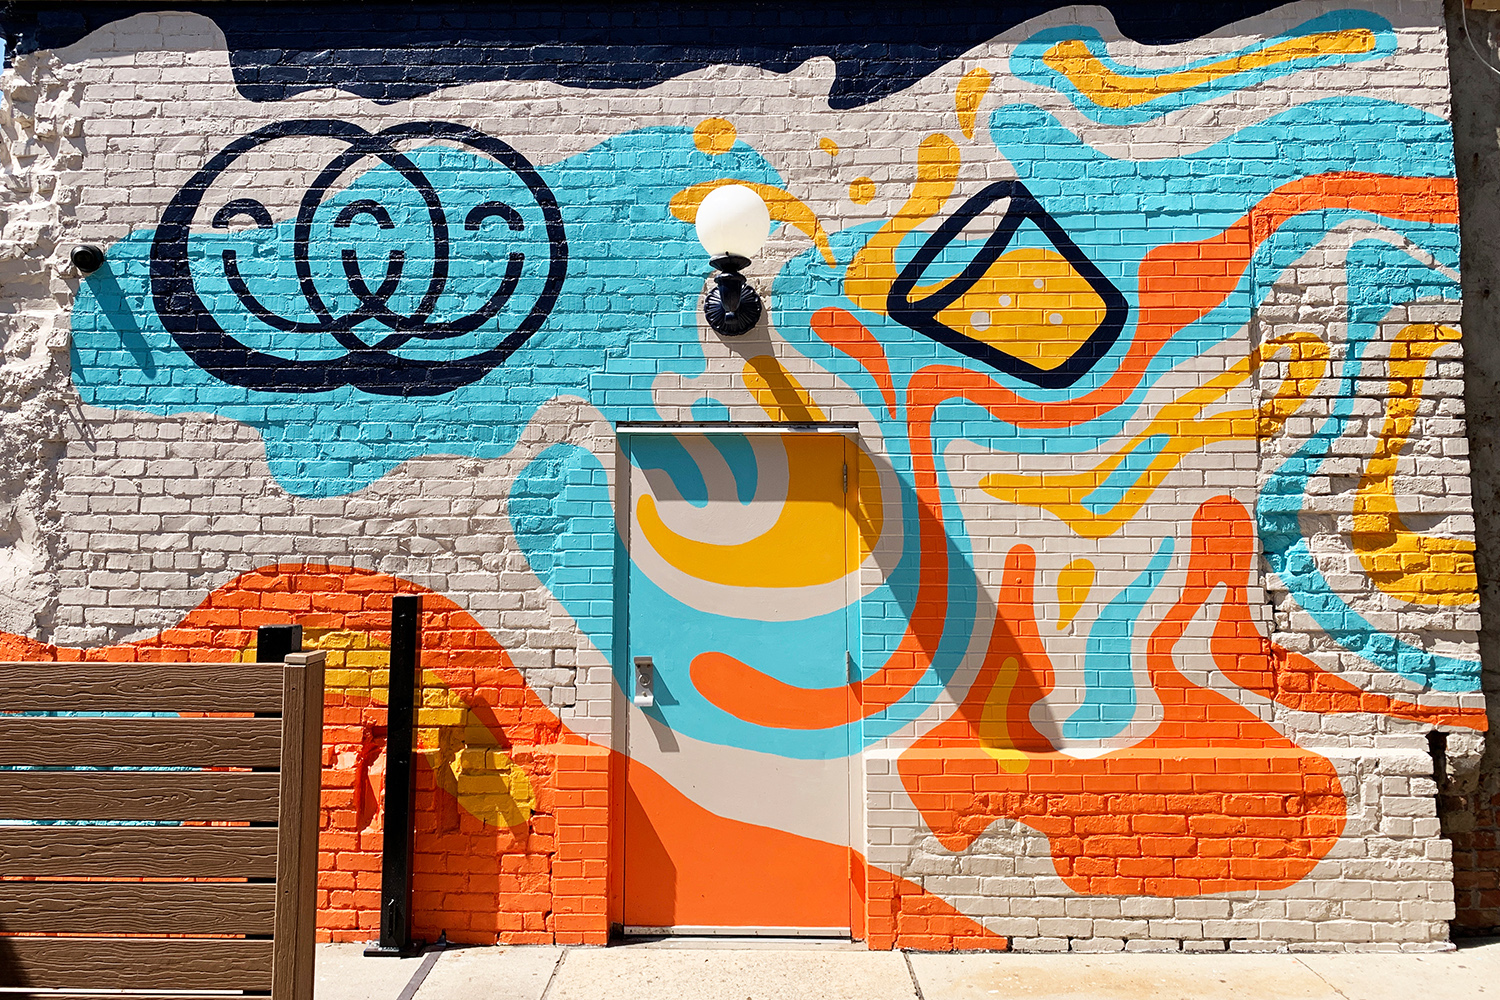 Image of completed blue, yellow and orange mural at Chummy in Des Moines, Iowa